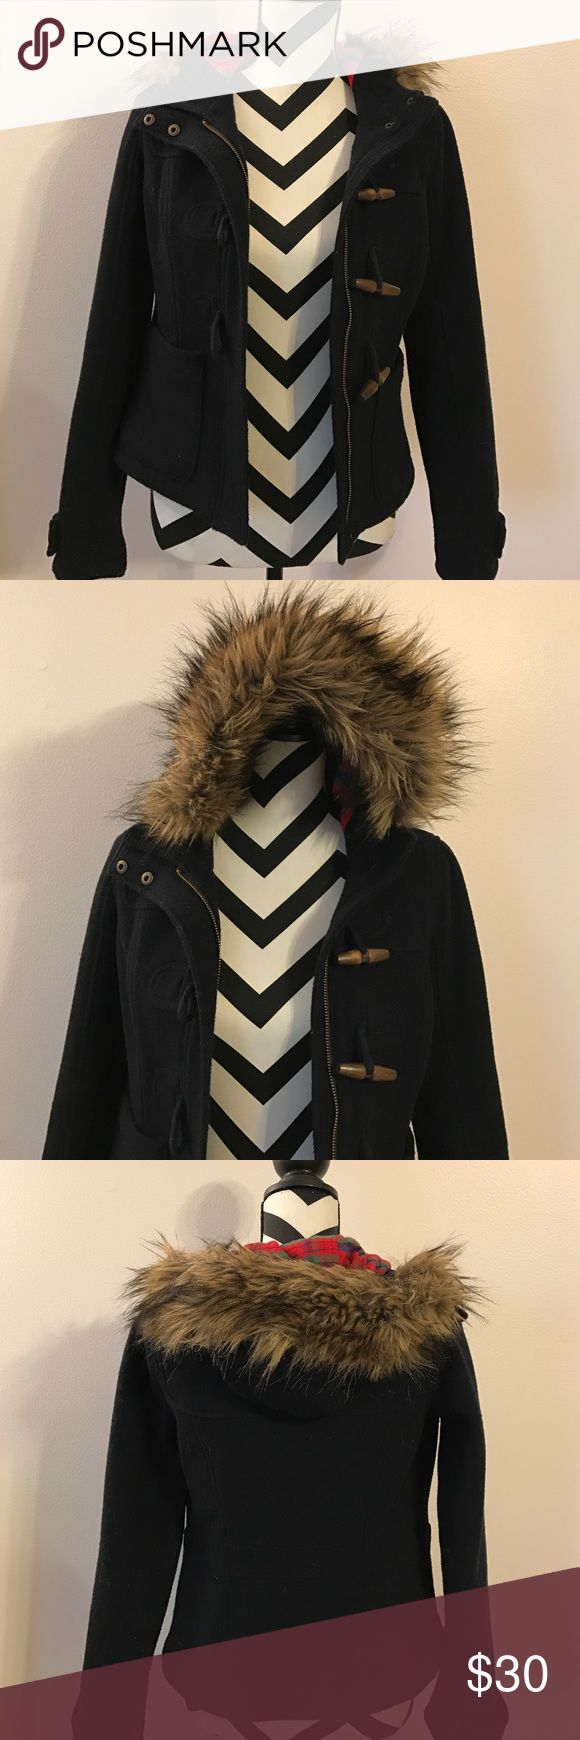 Hollister coat Navy coat with wooden buttons and a zipper. Plaid lining big the inside of the hood and fur on the outside. This coat is super cute and in great condition! Hollister Jackets & Coats Pea Coats